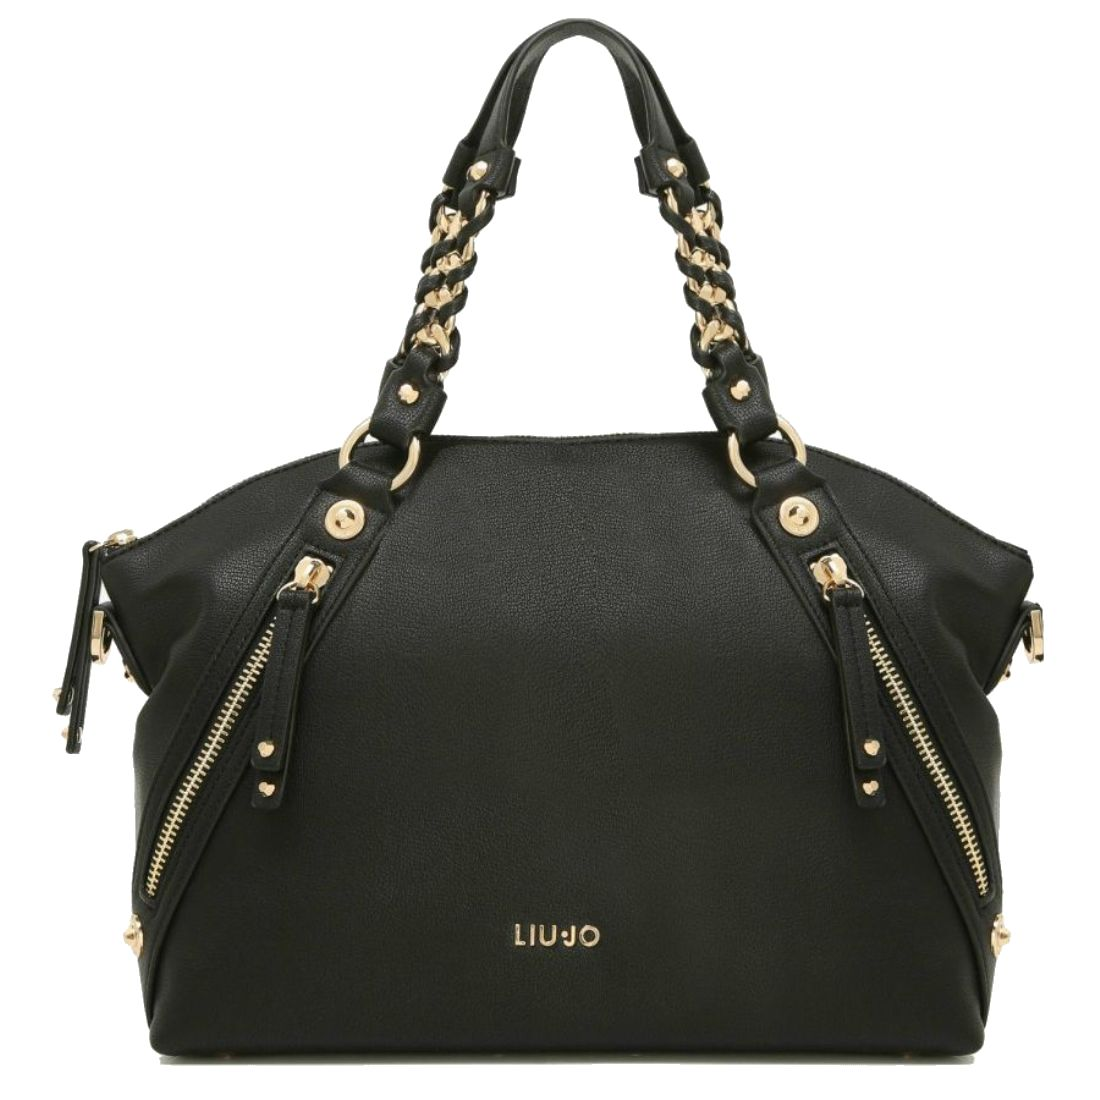 LIU JO Bauletto IT BAG N17197 Nero